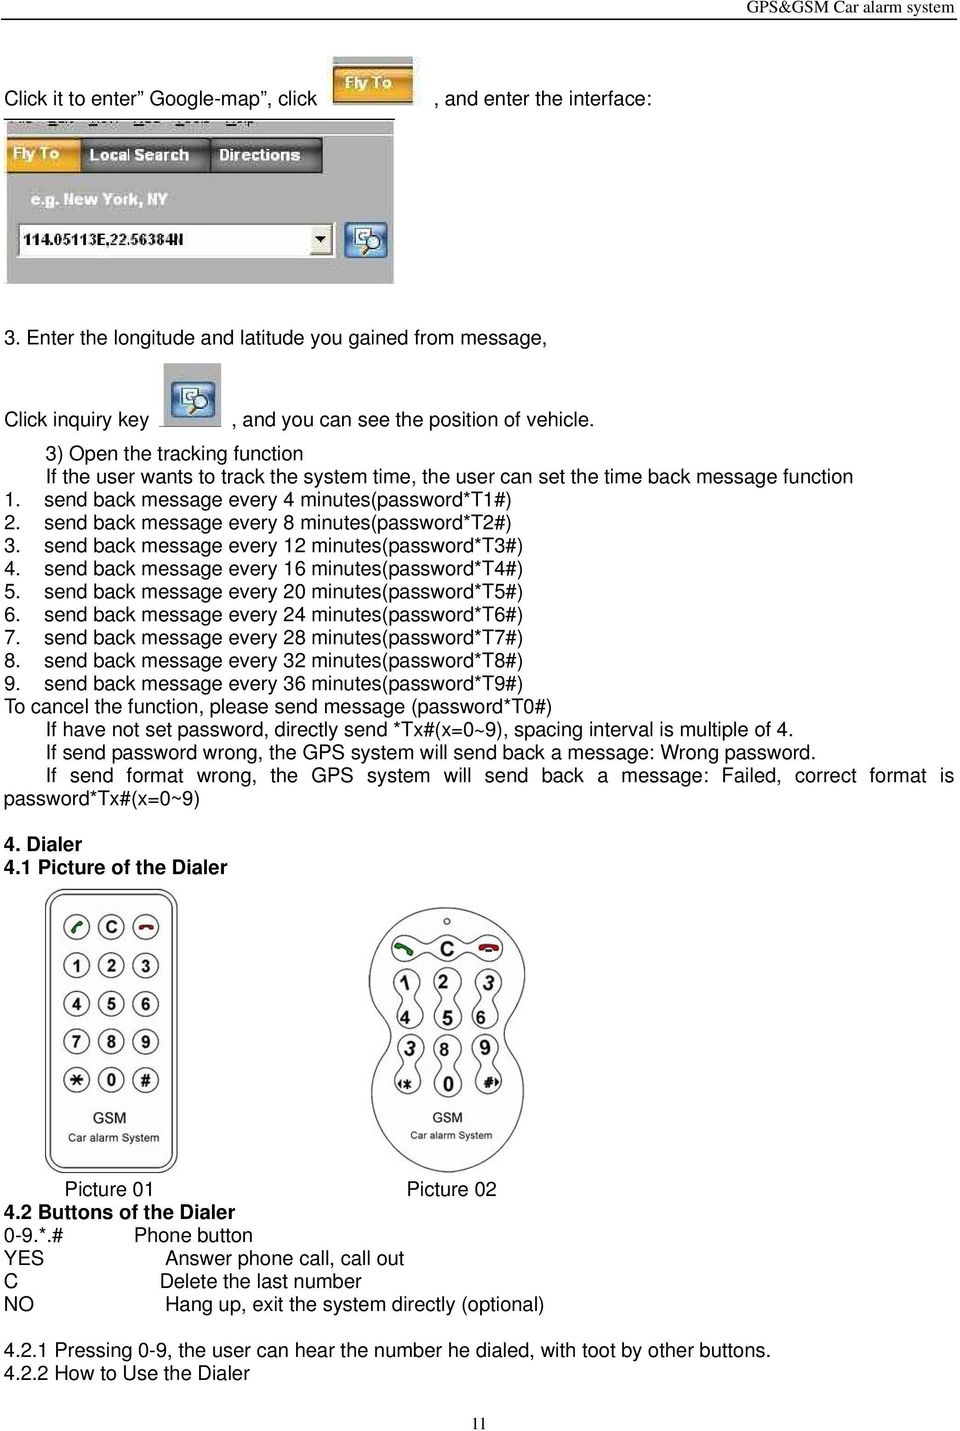 GSM and GPS Vehicle Tracking Alarm System User Manual Please read it